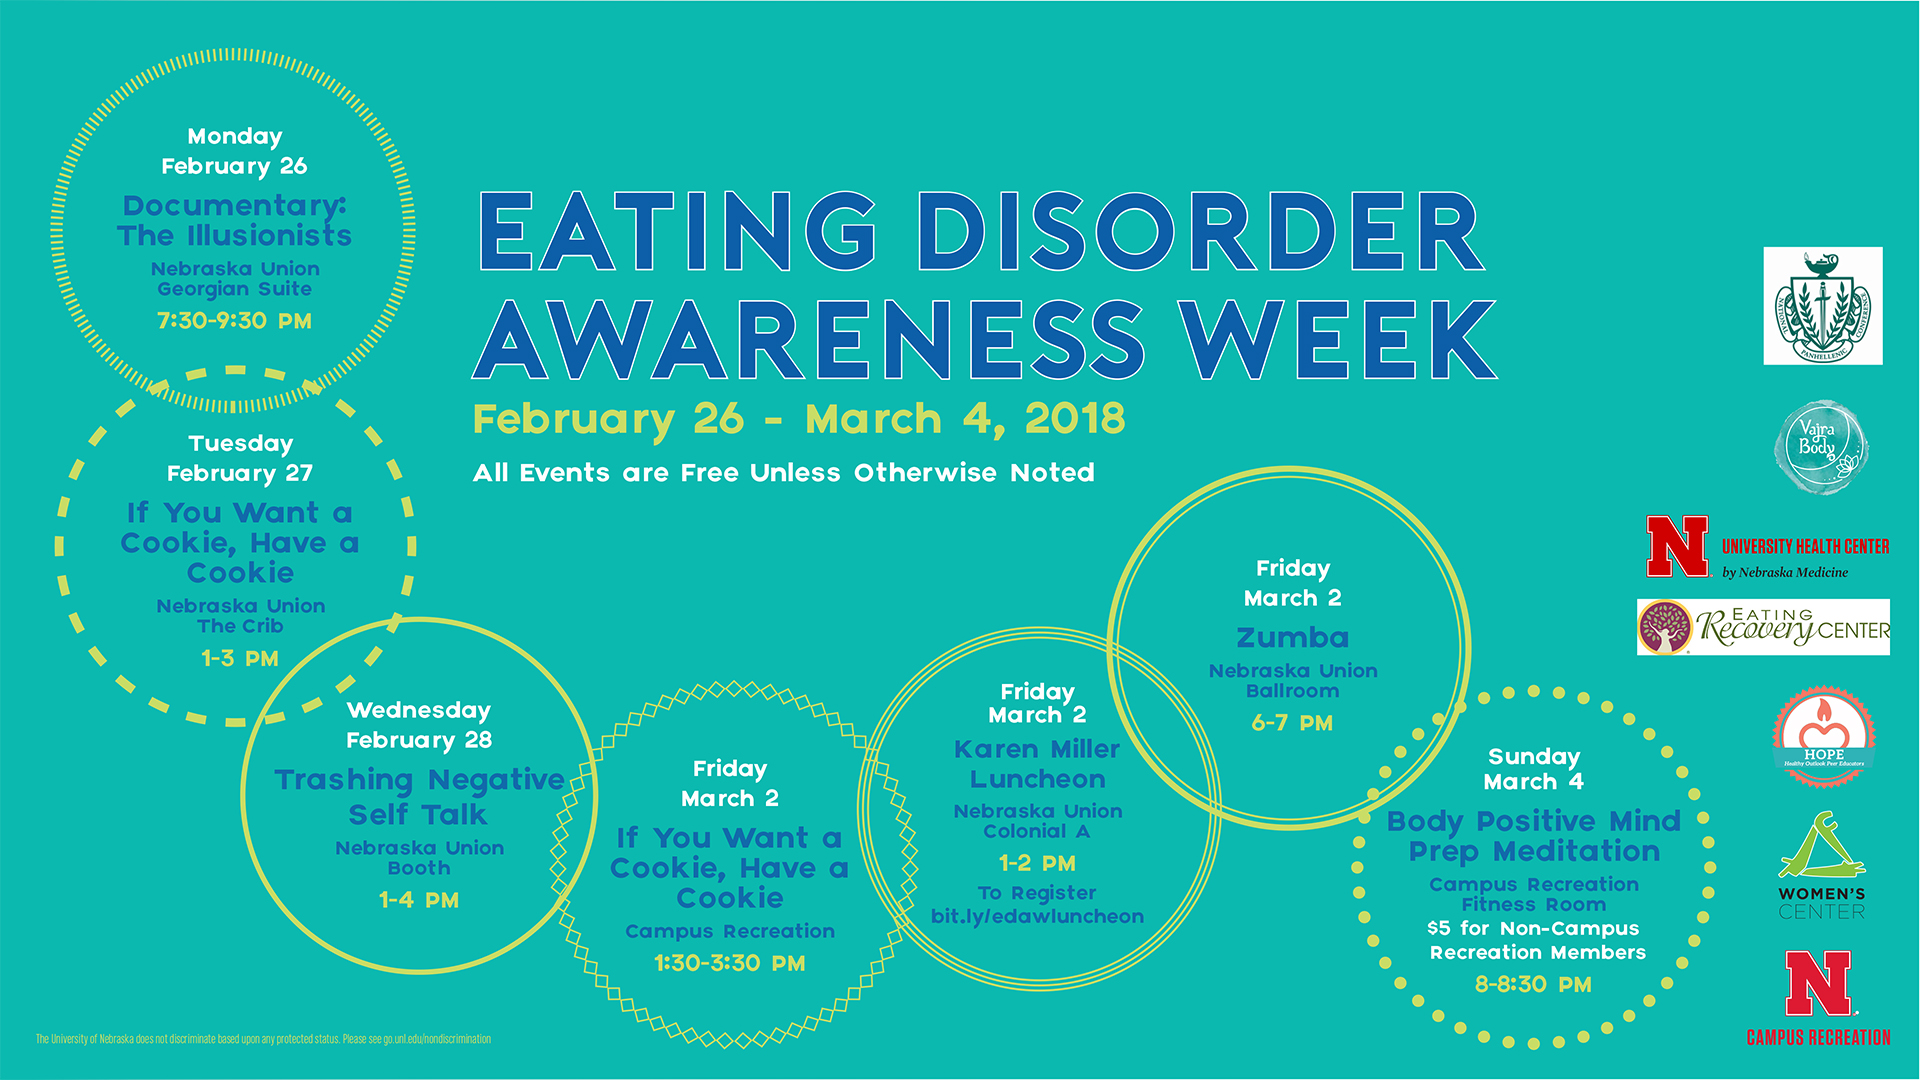 Eating Disorder Awareness Week flier